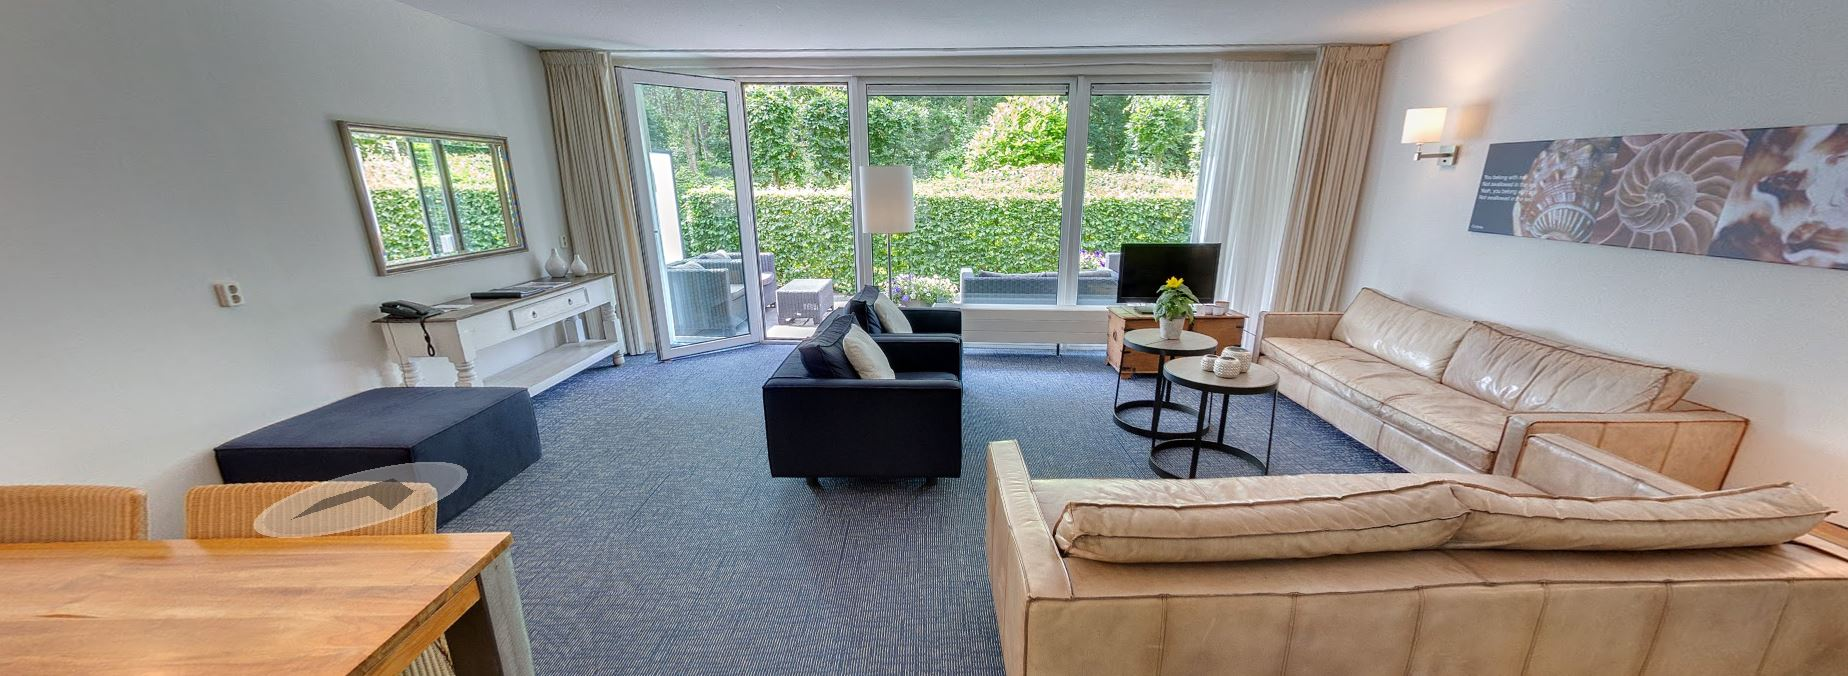 virtual-tour-appartement-extra-large-aparthotel-boschrijck